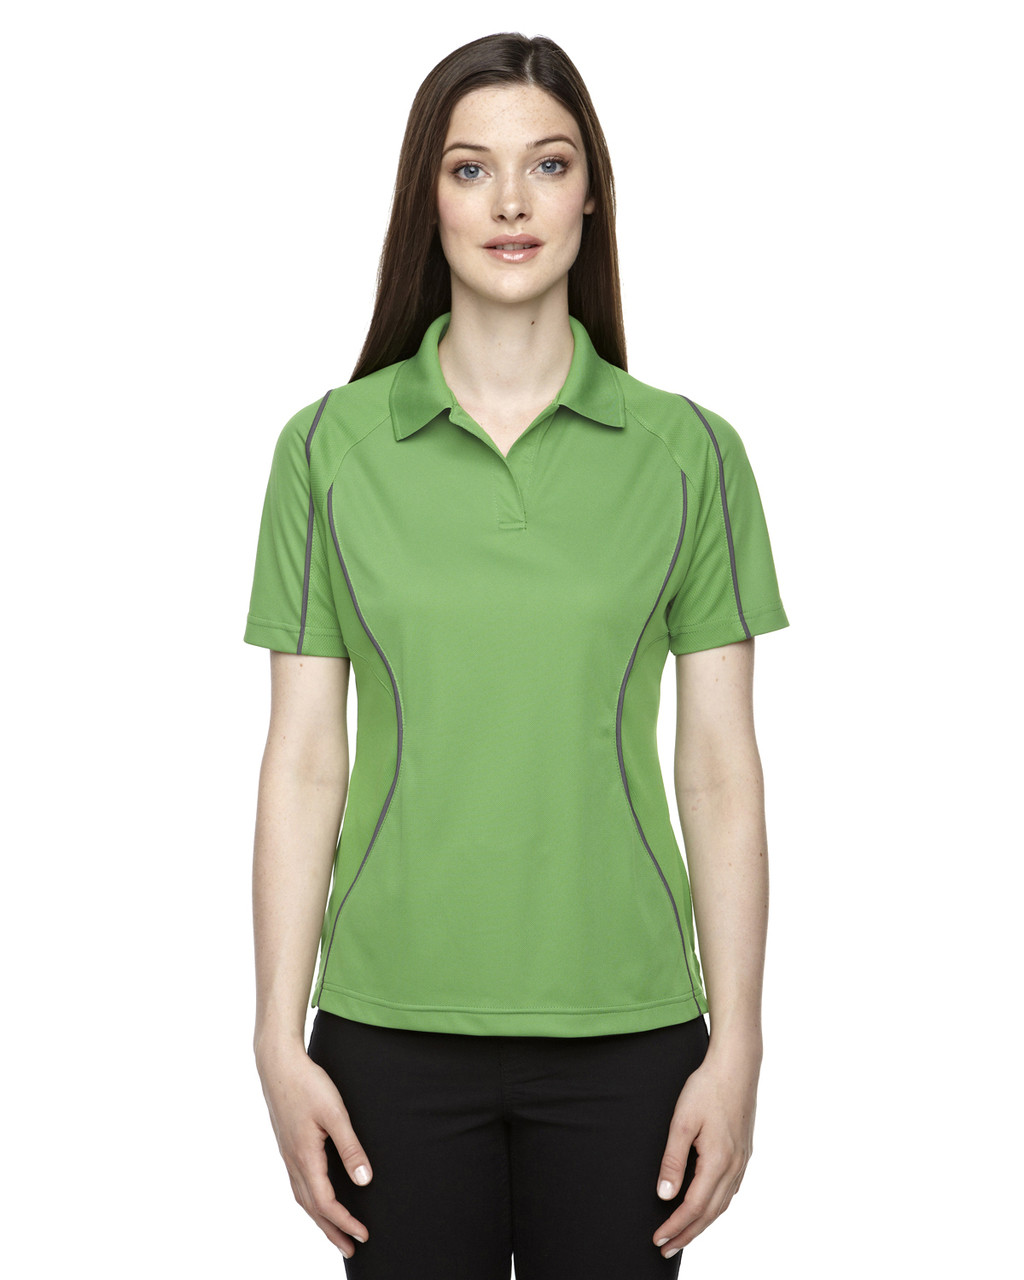 Valley Green - 75107 Ash City - Extreme Eperformance Ladies' Velocity Colourblock Polo Shirt with Piping